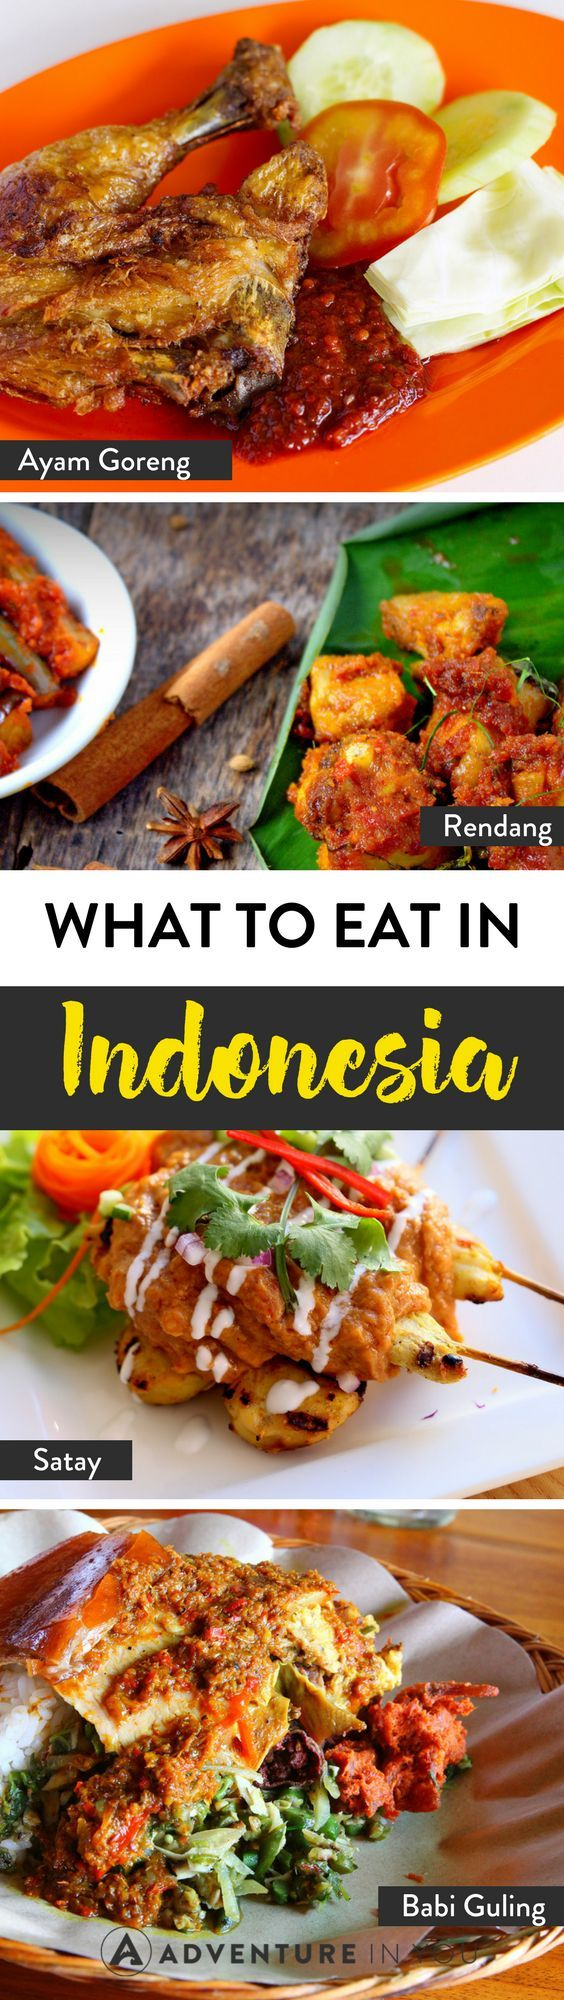 Indonesian Food | Are you traveling around Indonesia? Here's a list of must try dishes while you're traveling around the country. From chicken satay to rendang, Indonesian food is delicious